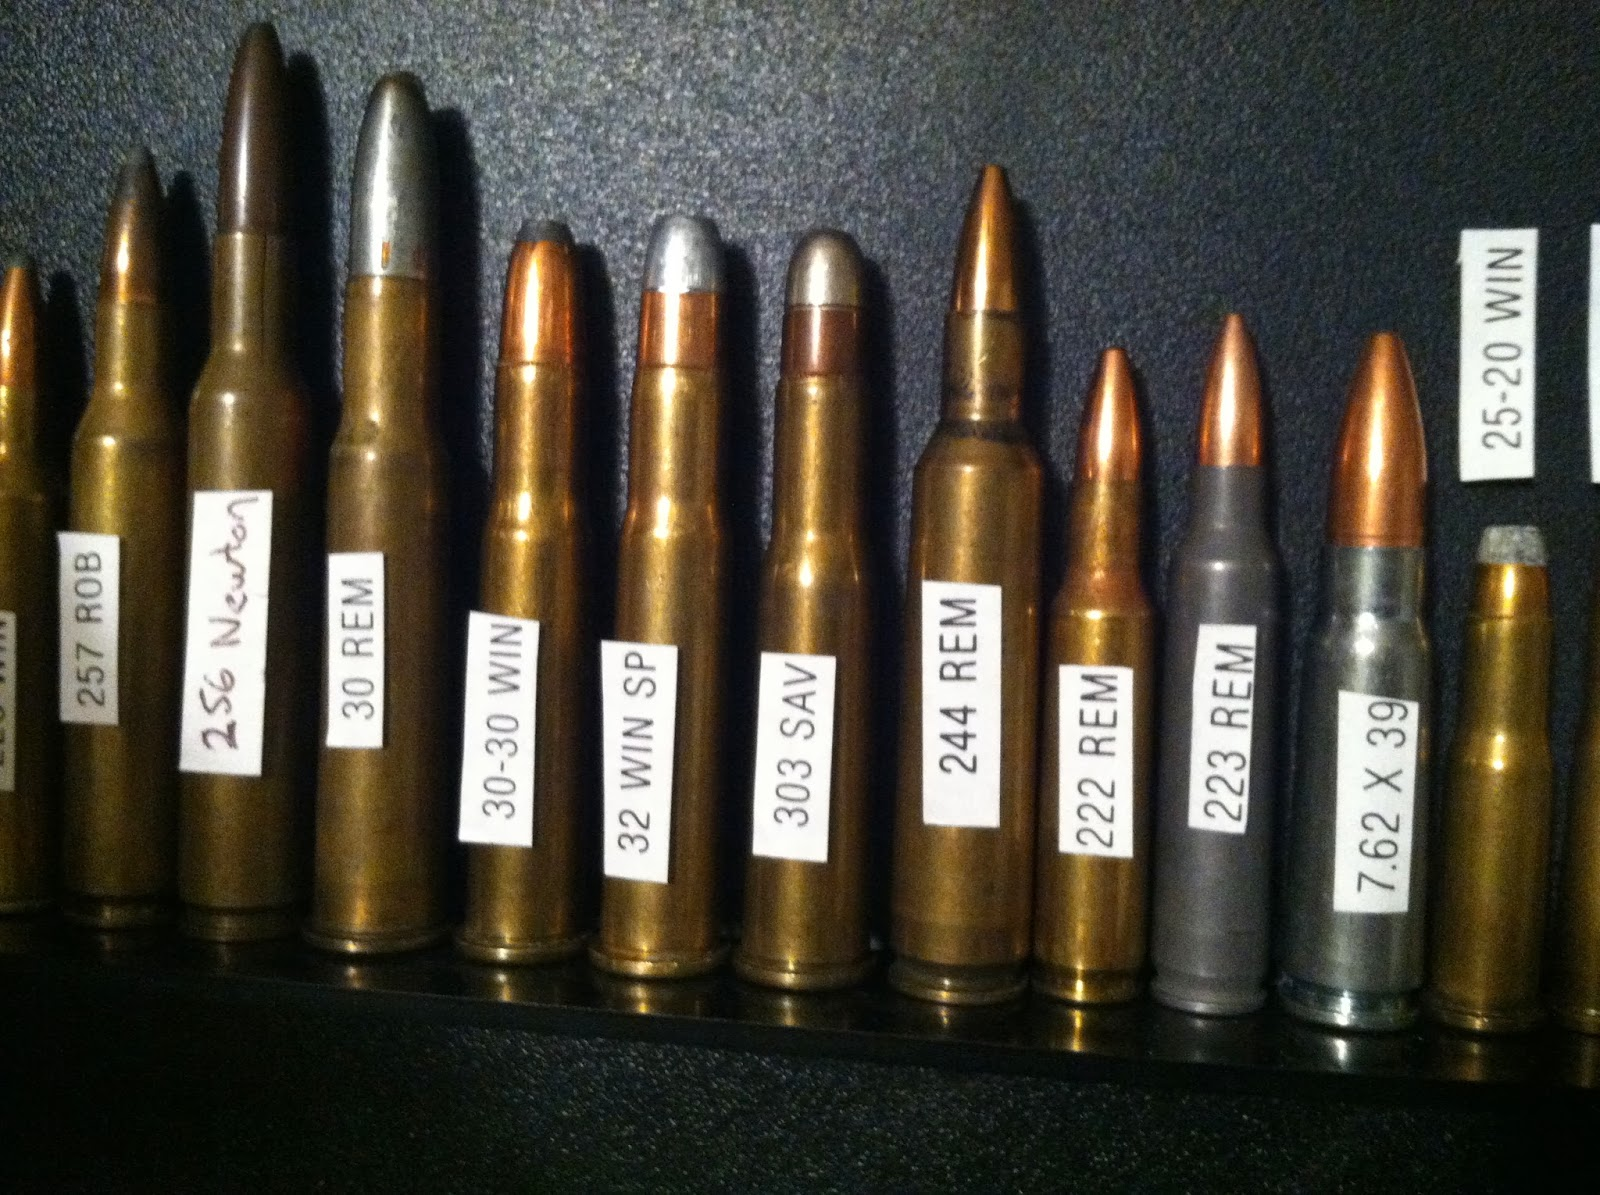 Rimfire Ammo furthermore Wm together with Px Handgun Calibers furthermore Img further Schofield. on 17 hmr ammo